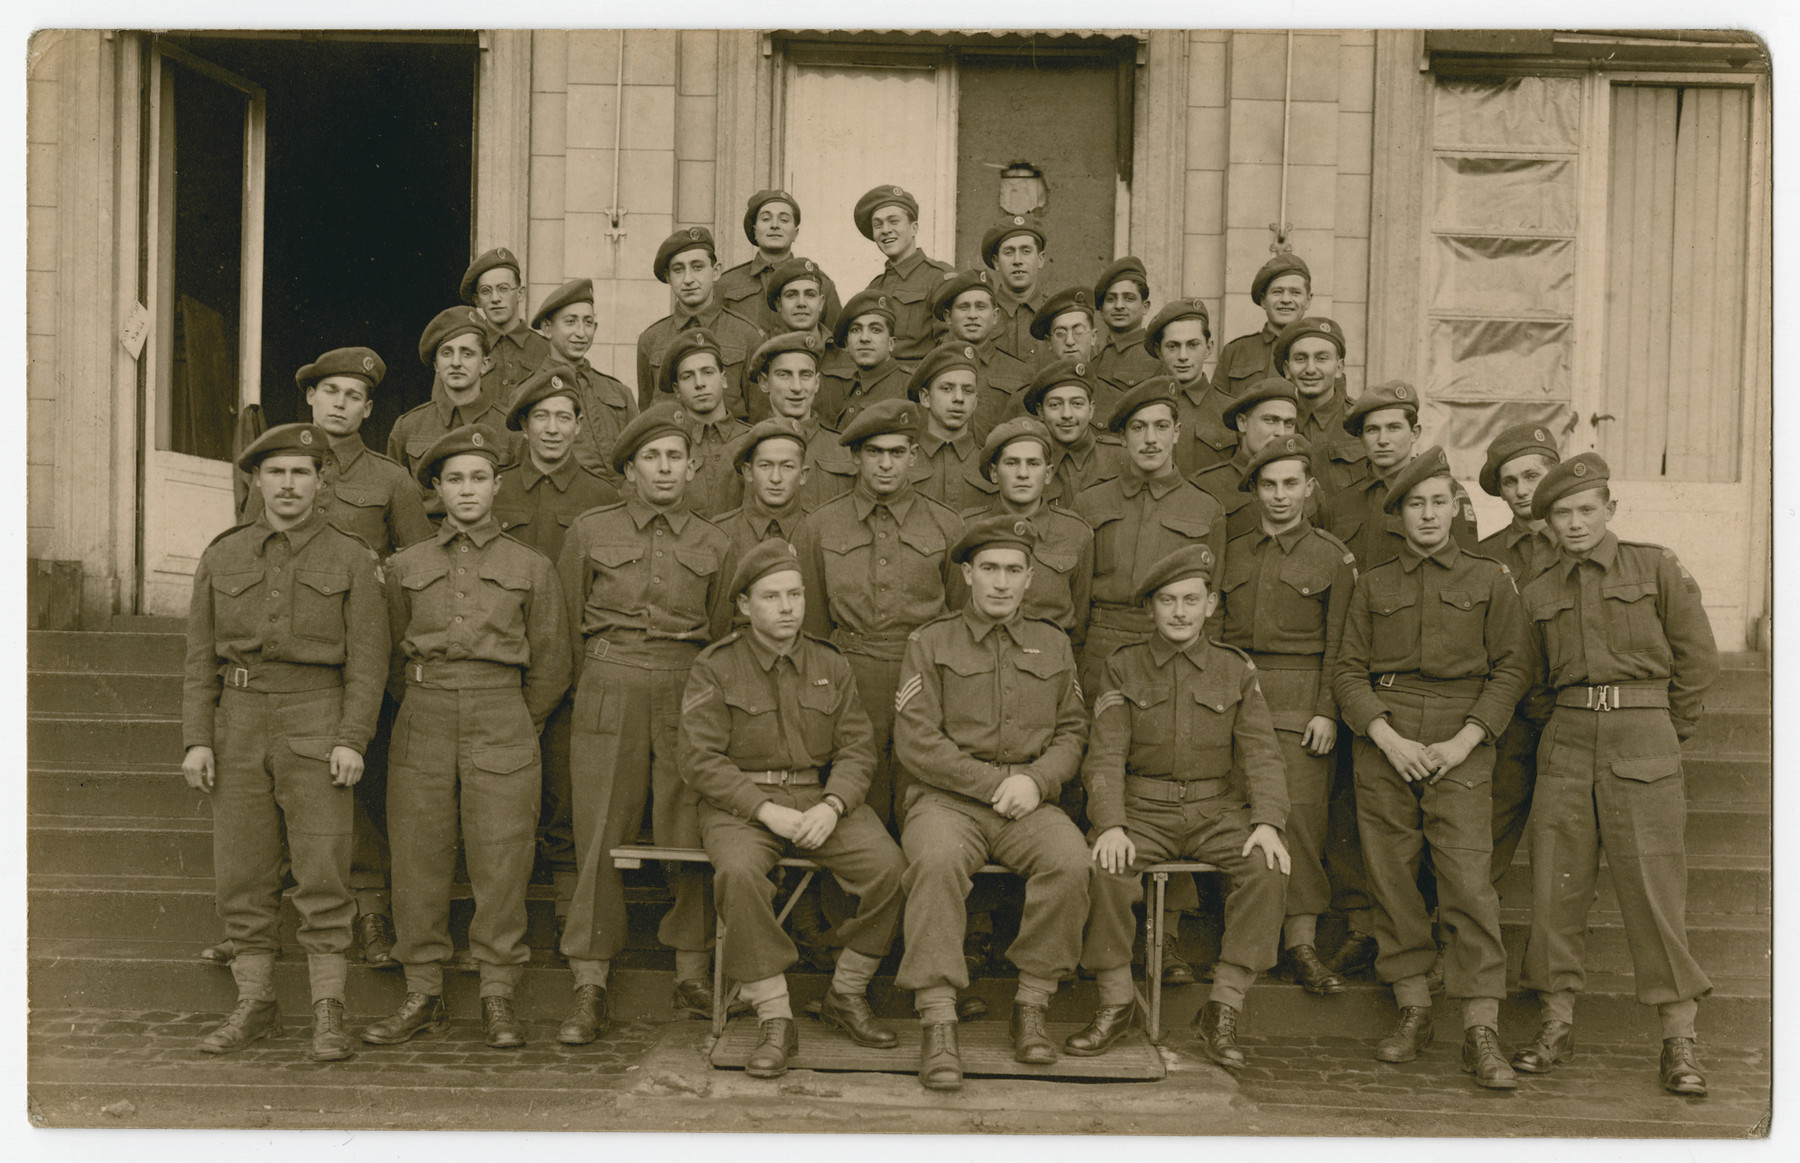 Group portrait of the members of the Third Battalion, Company A of the Jewish Brigade at their headquarters in Antwerp.  Among those pictured are Hersh Makowski, Eric Gross, Werner Szerevski and Zrubavel Horowitz.